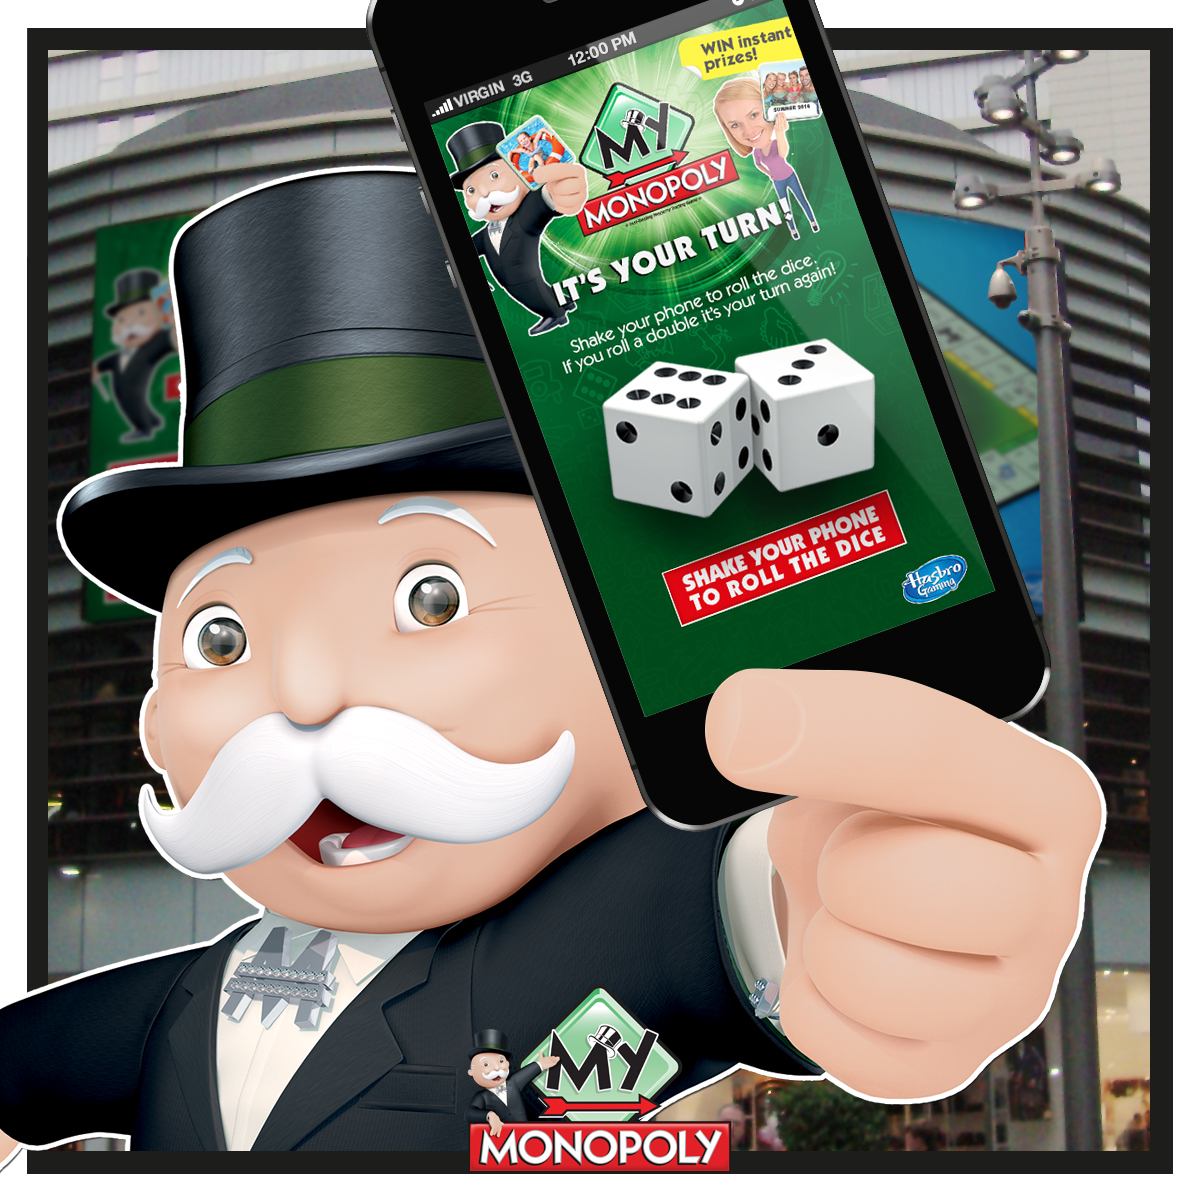 Hasbro Promotes 'My Monopoly' with Mobile Technology at Westfield Stratford